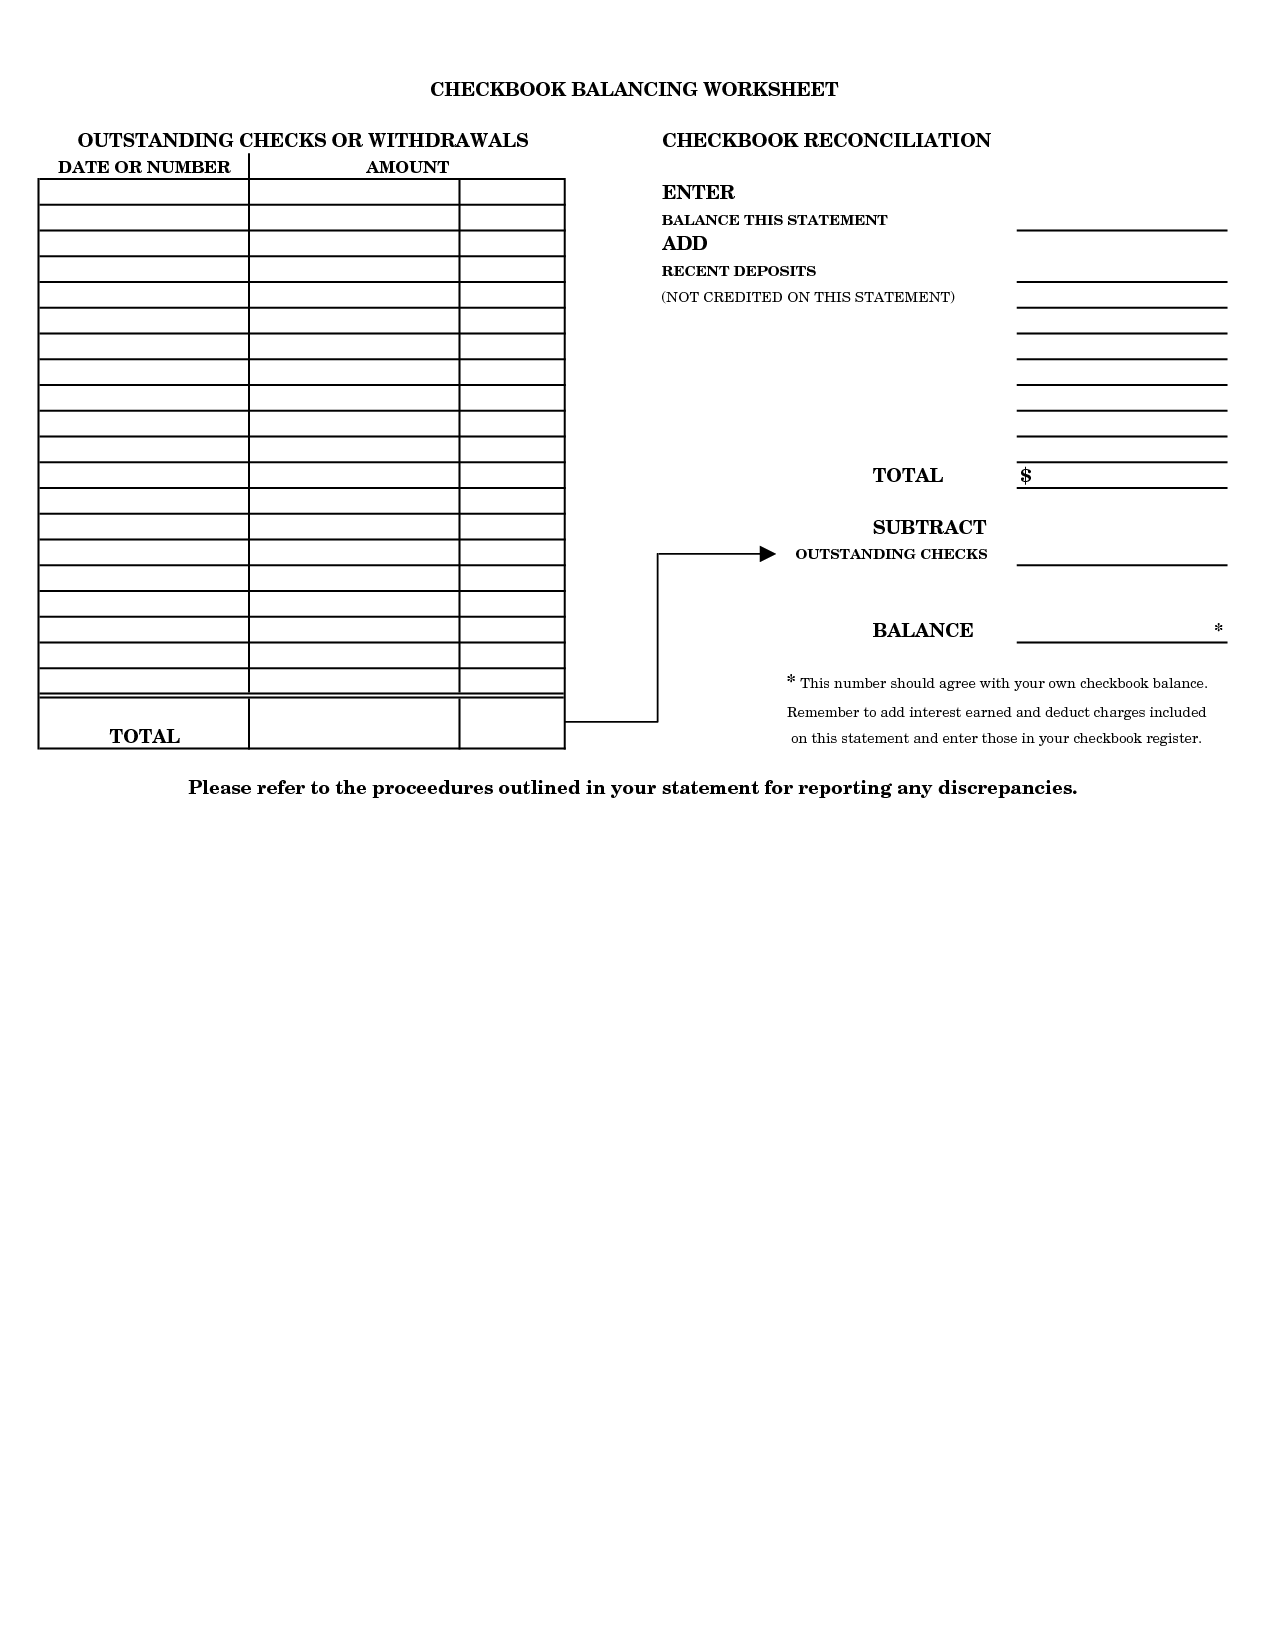 Printables Bank Reconciliation Worksheet For Students printables balancing checkbook worksheet safarmediapps 1000 images about thats clever on pinterest crafts picture books and balance